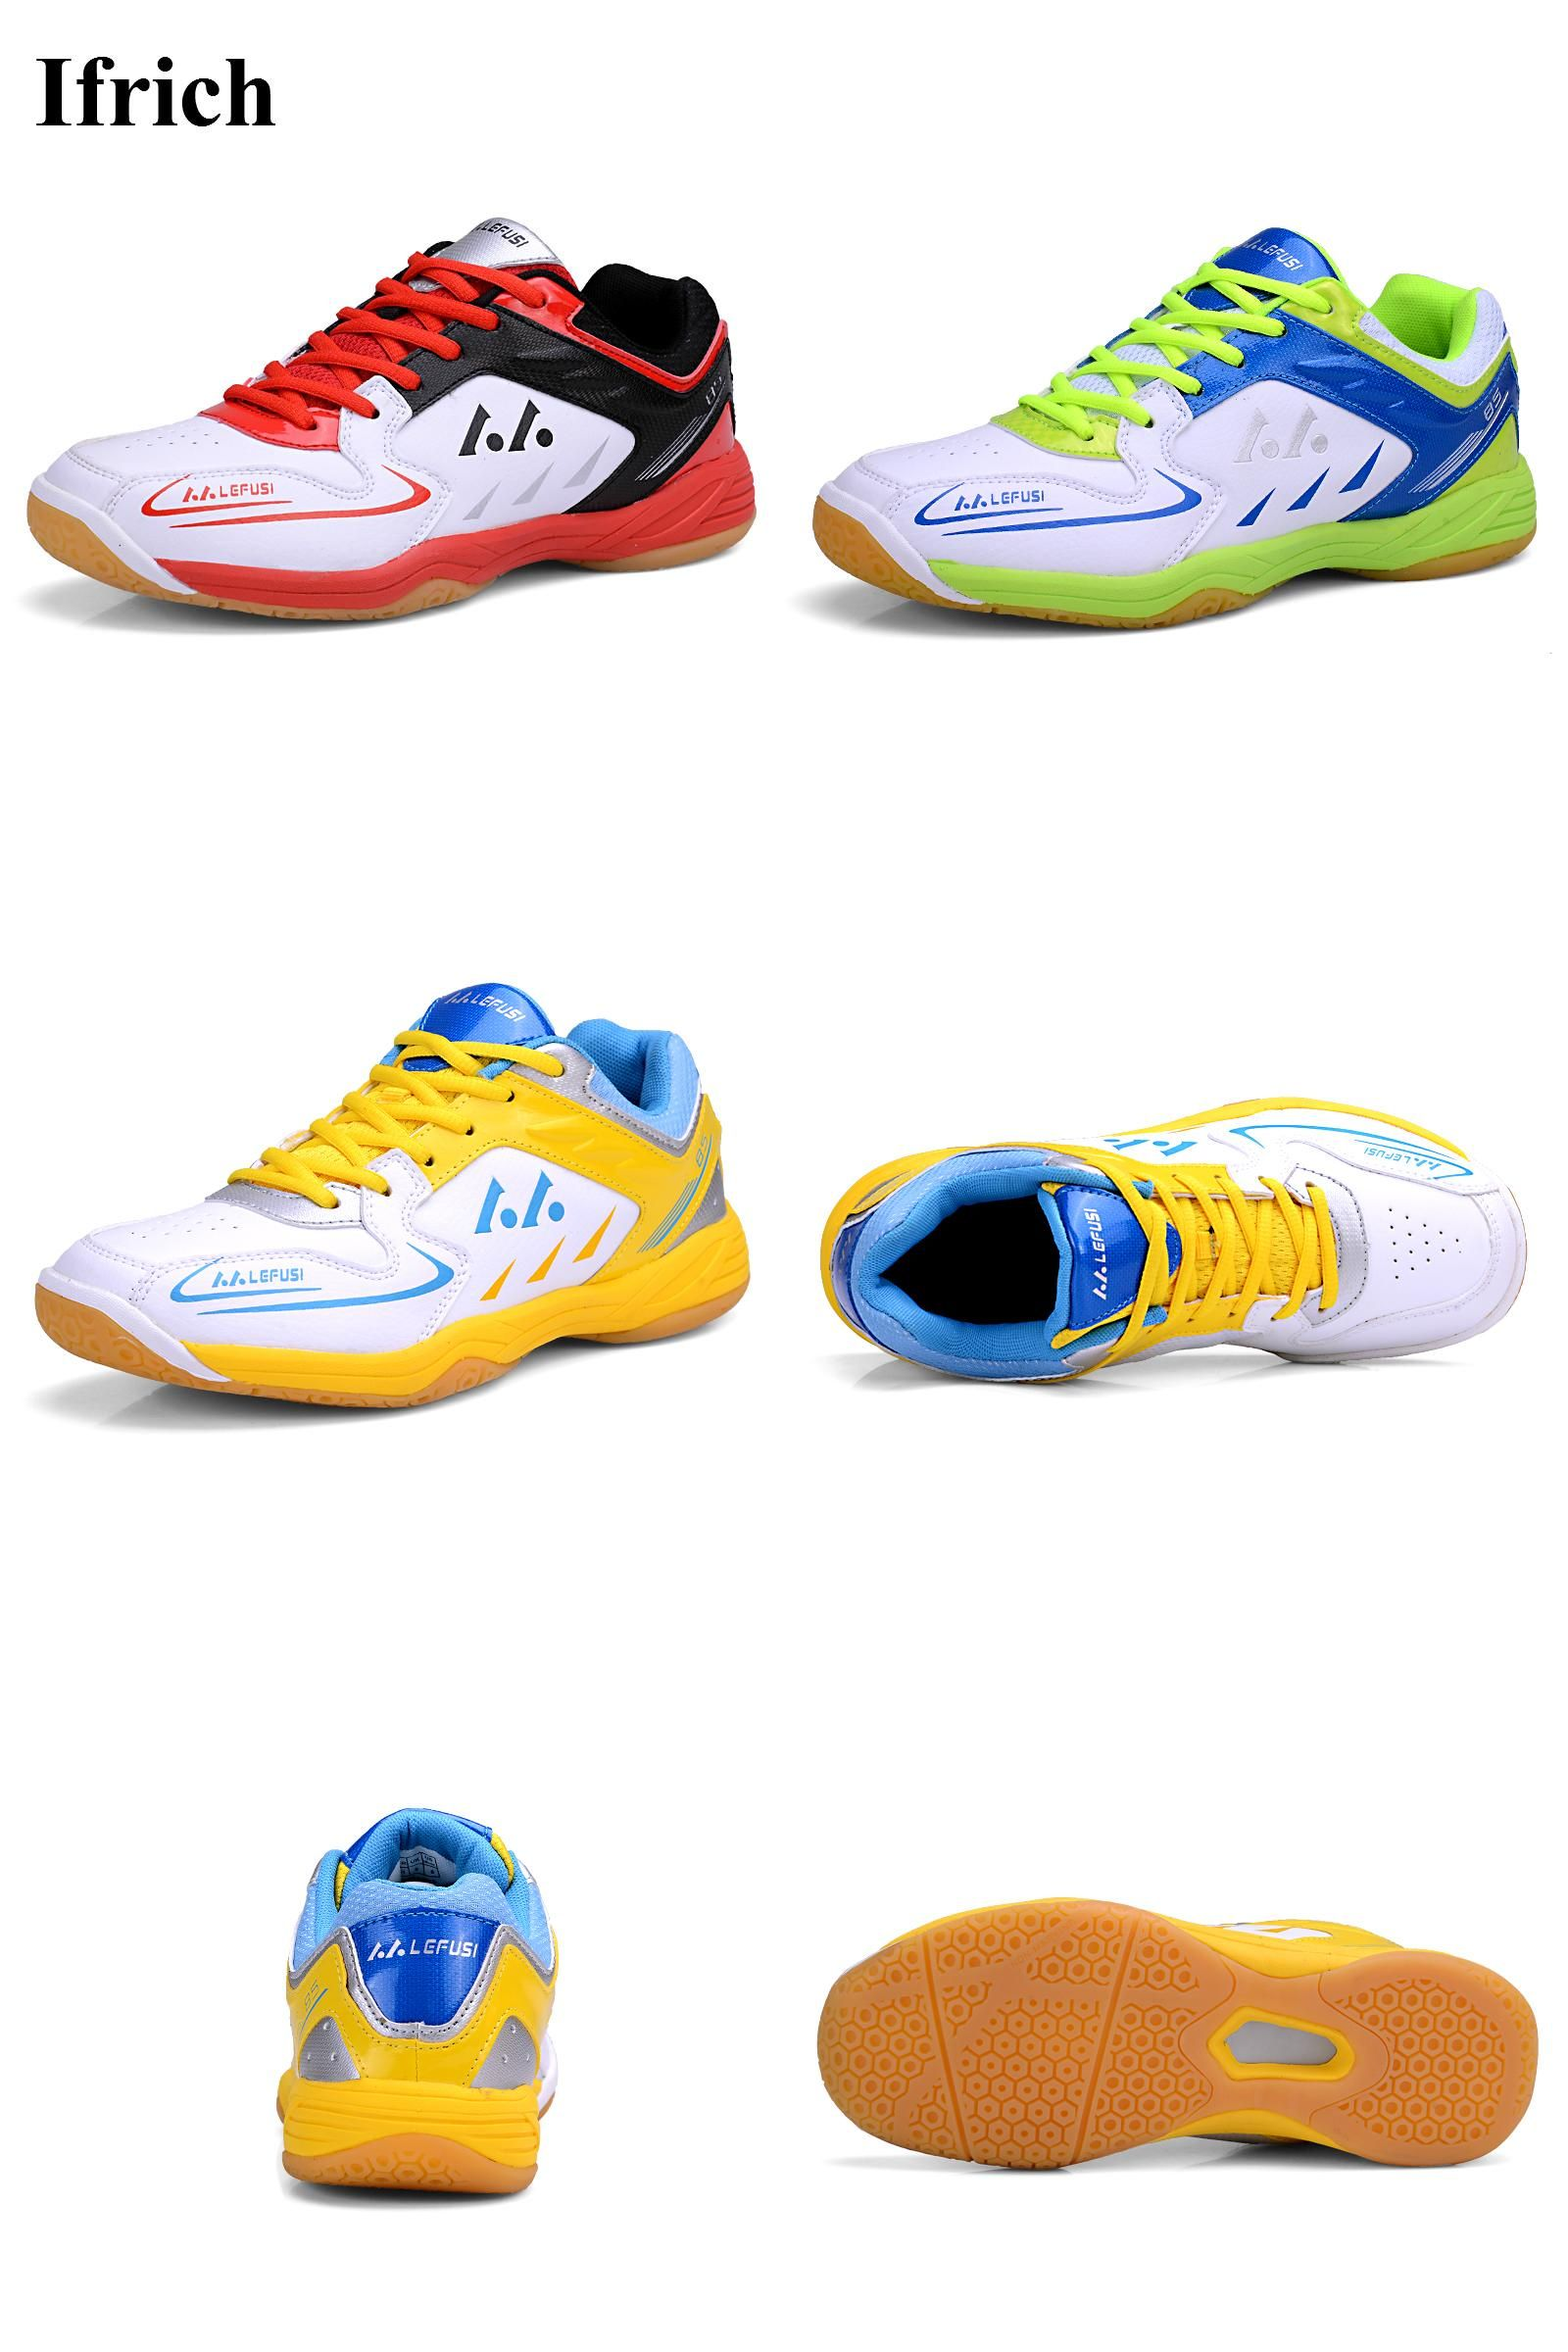 Visit To Buy Big Size 45 Badminton Shoes For Men Women Badminton Sneakers Red Greeen Couples Badminton Snea Sport Shoes Men Badminton Shoes Green Court Shoes